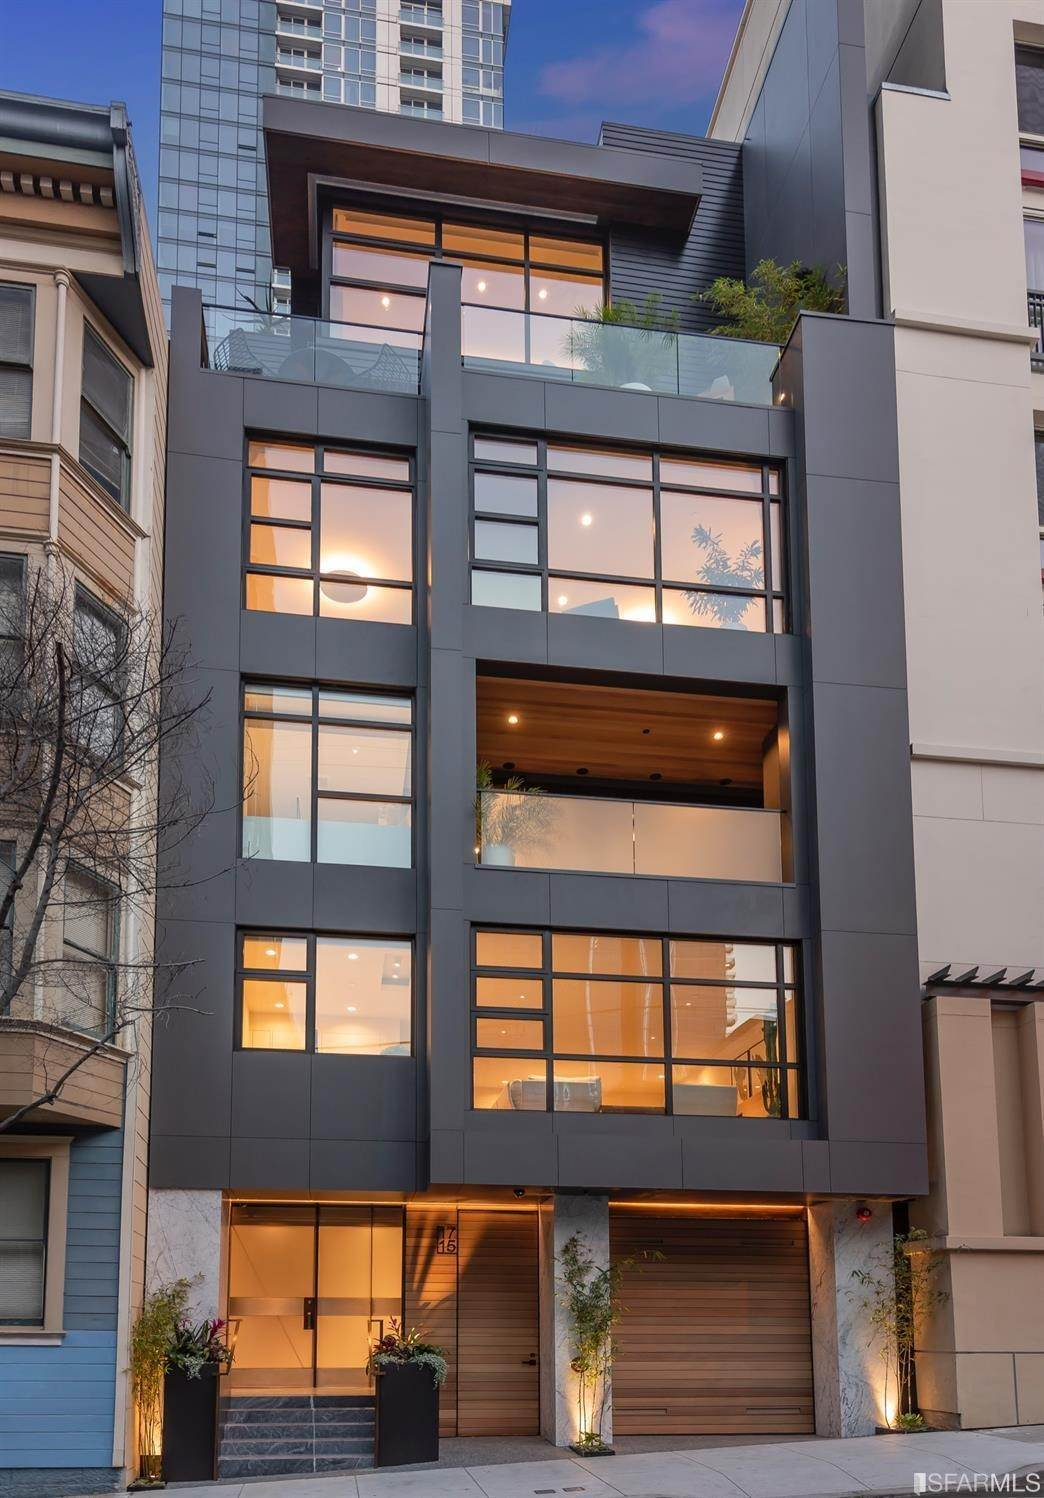 Duplex Homes for Sale at 15 Guy Place San Francisco, California 94105 United States